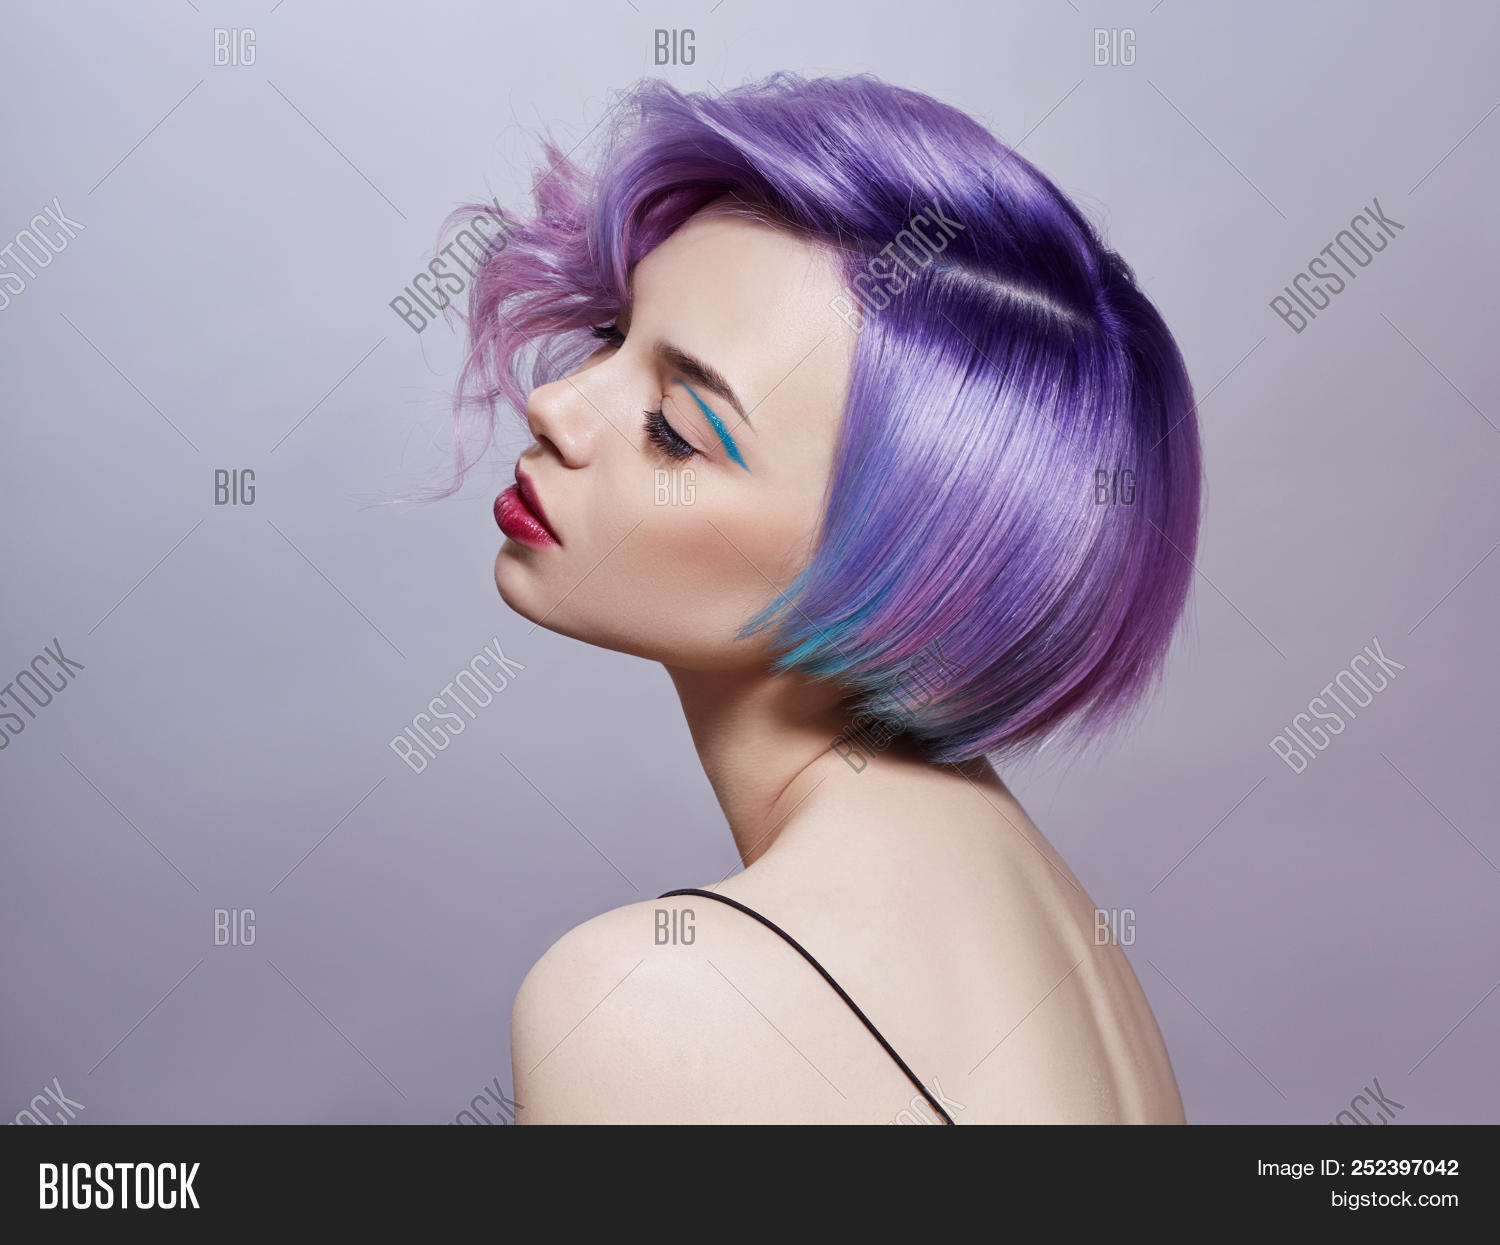 art,attractive,background,beautiful,beauty,blue,bright,care,closeup,color,colored,colorful,coloring,colour,colourful,cosmetic,dyed,face,fashion,female,girl,glamour,green,hair,haircut,hairdresser,hairstyle,hipster,isolated,look,make-up,makeup,model,person,pink,portrait,purple,rainbow,salon,shampoo,style,styling,stylish,summer,trendy,violet,vivid,white,woman,young